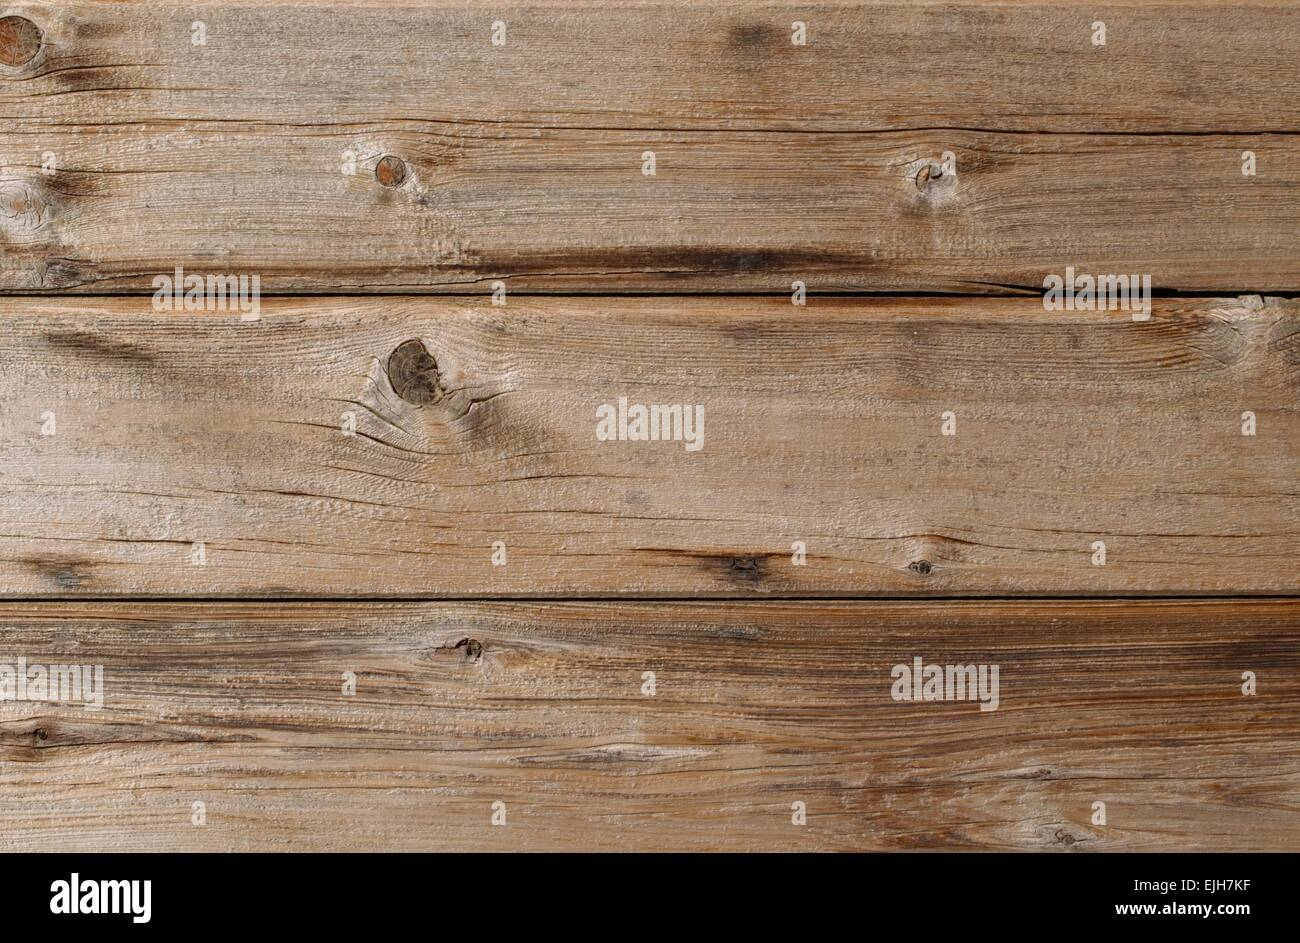 Sun bleached weathered cedar siding wall with knots and